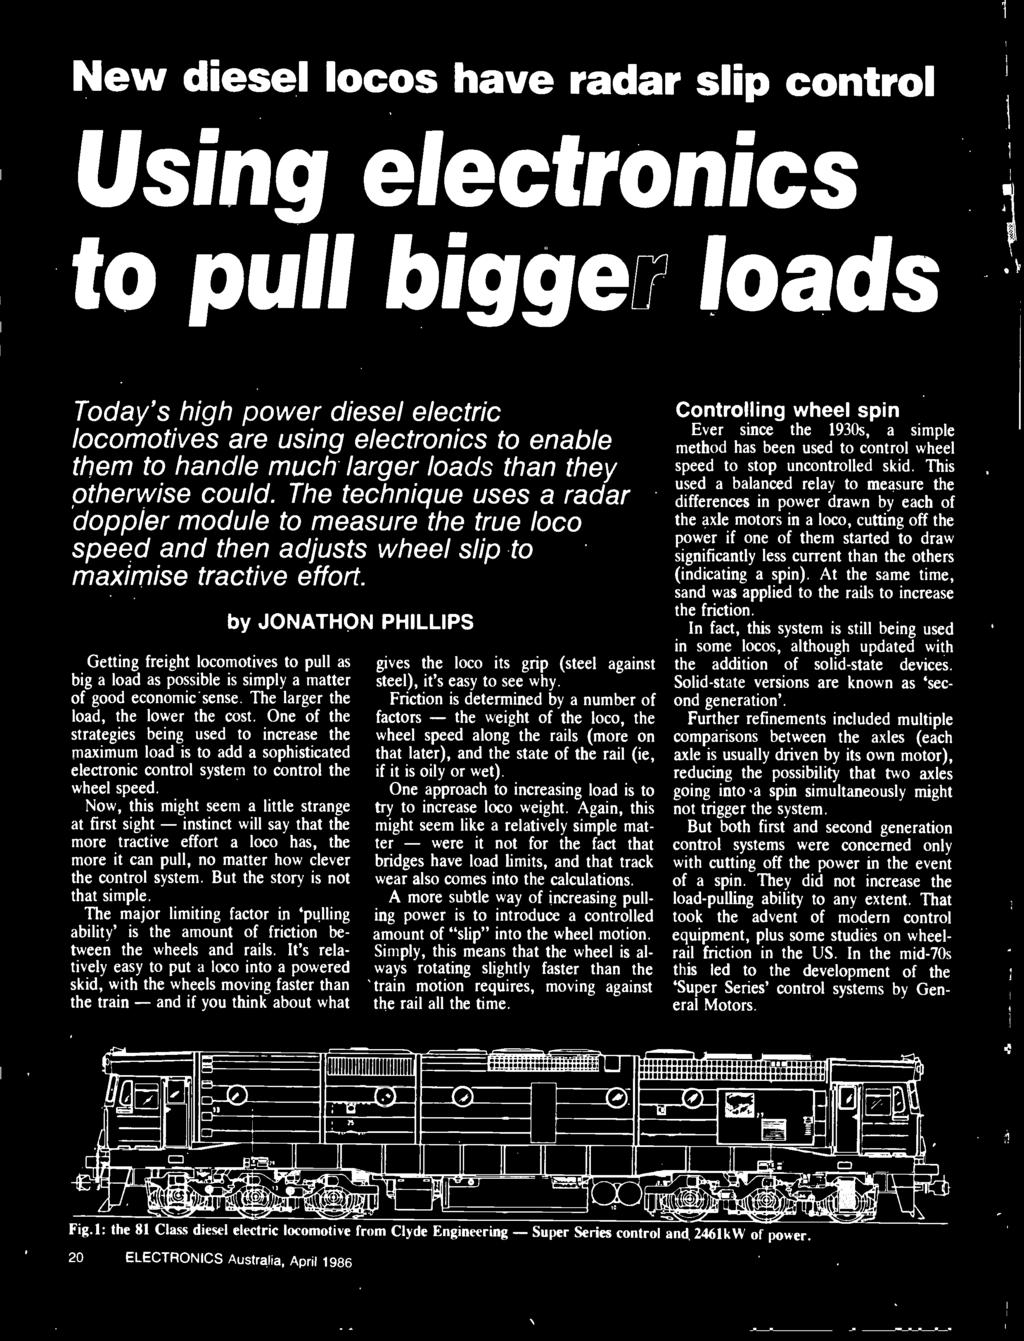 Australias Top Selling Electronics Magazine April 1986 Aust 5vdc Mini Circuit Board For Speedy Triumph Forum Rat Now This Might Seem A Little Strange At First Sight Instinct Will Say That